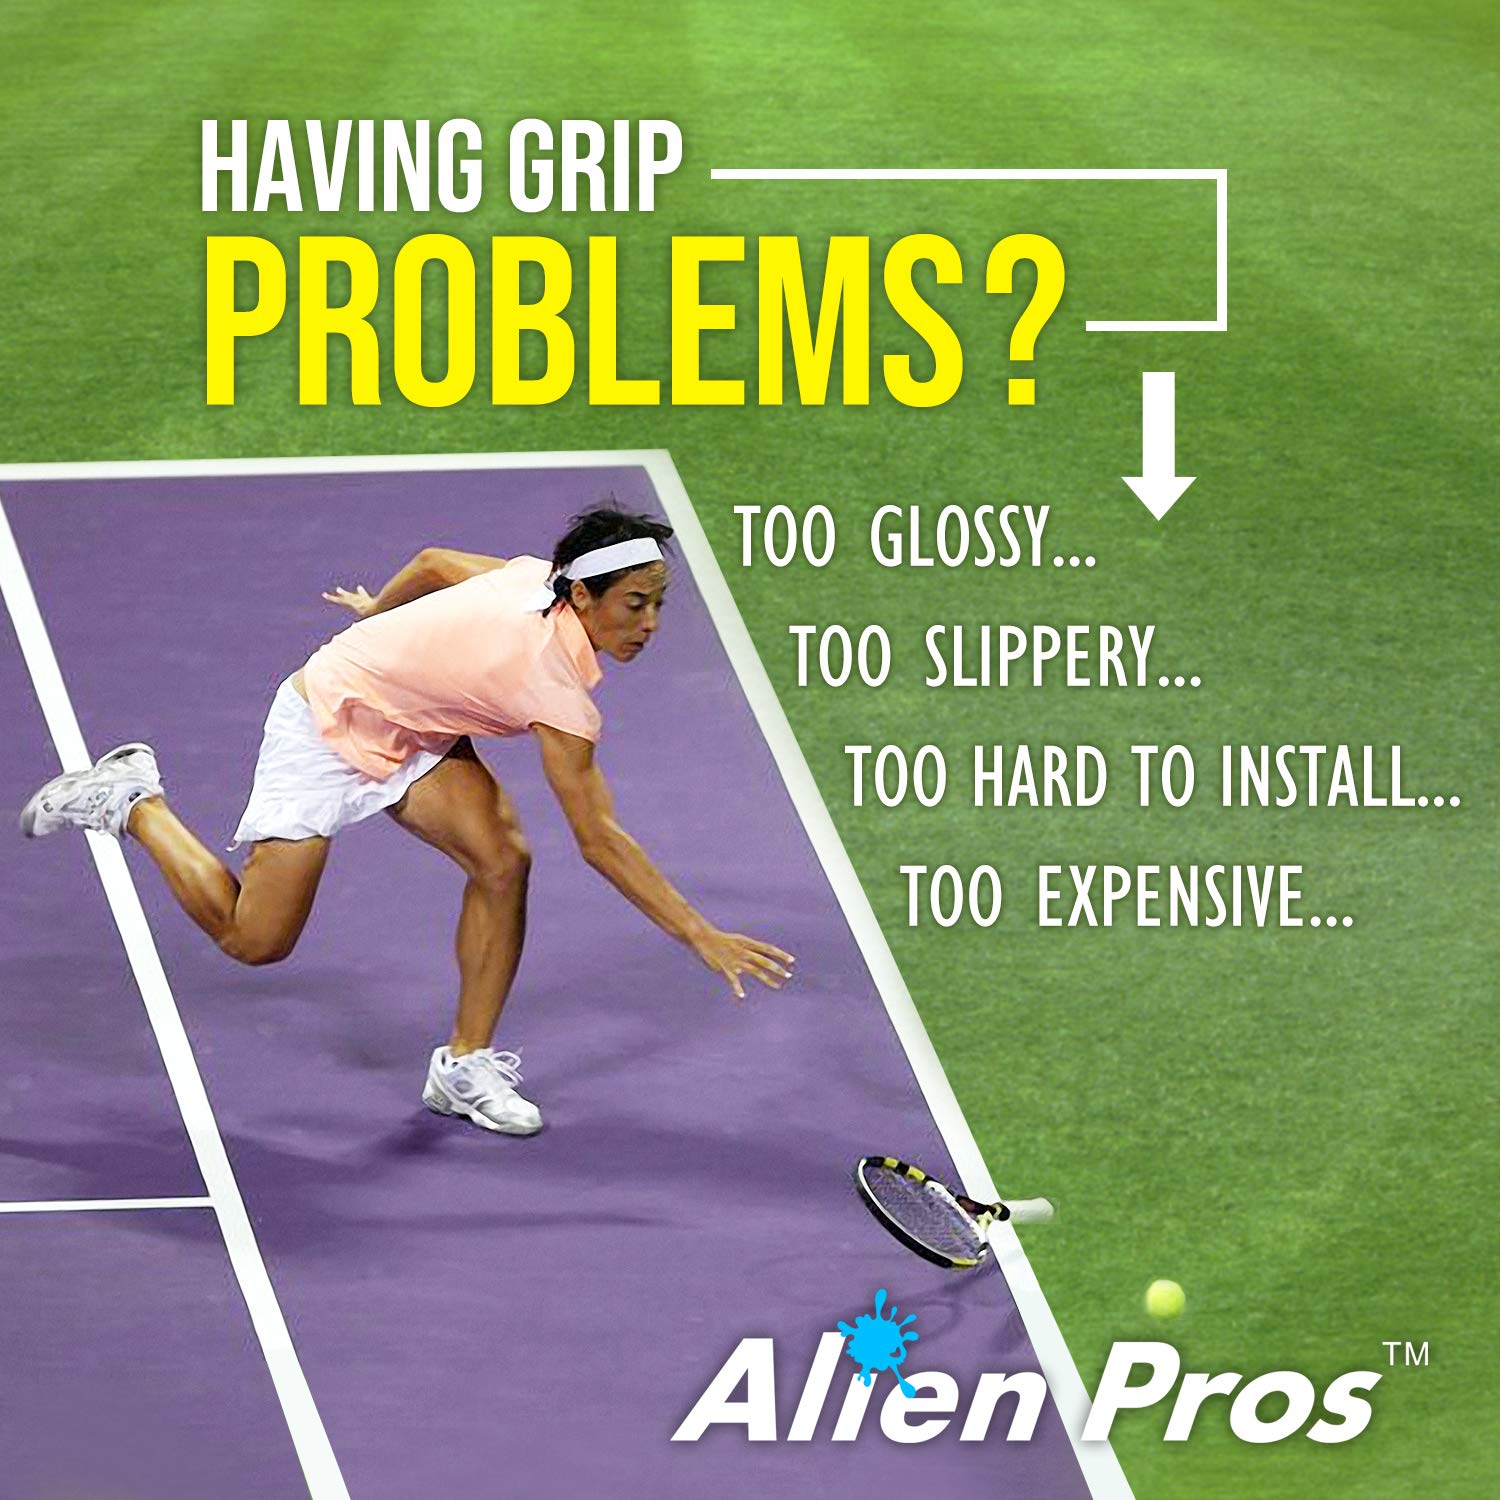 Amazon.com : Alien Pros Tennis Grip Tape for Rackets - (1 Grip) Precut and Dry Feel Overgrip - Replacement for Old Overwraps - Wrap Your Racquet for High ...